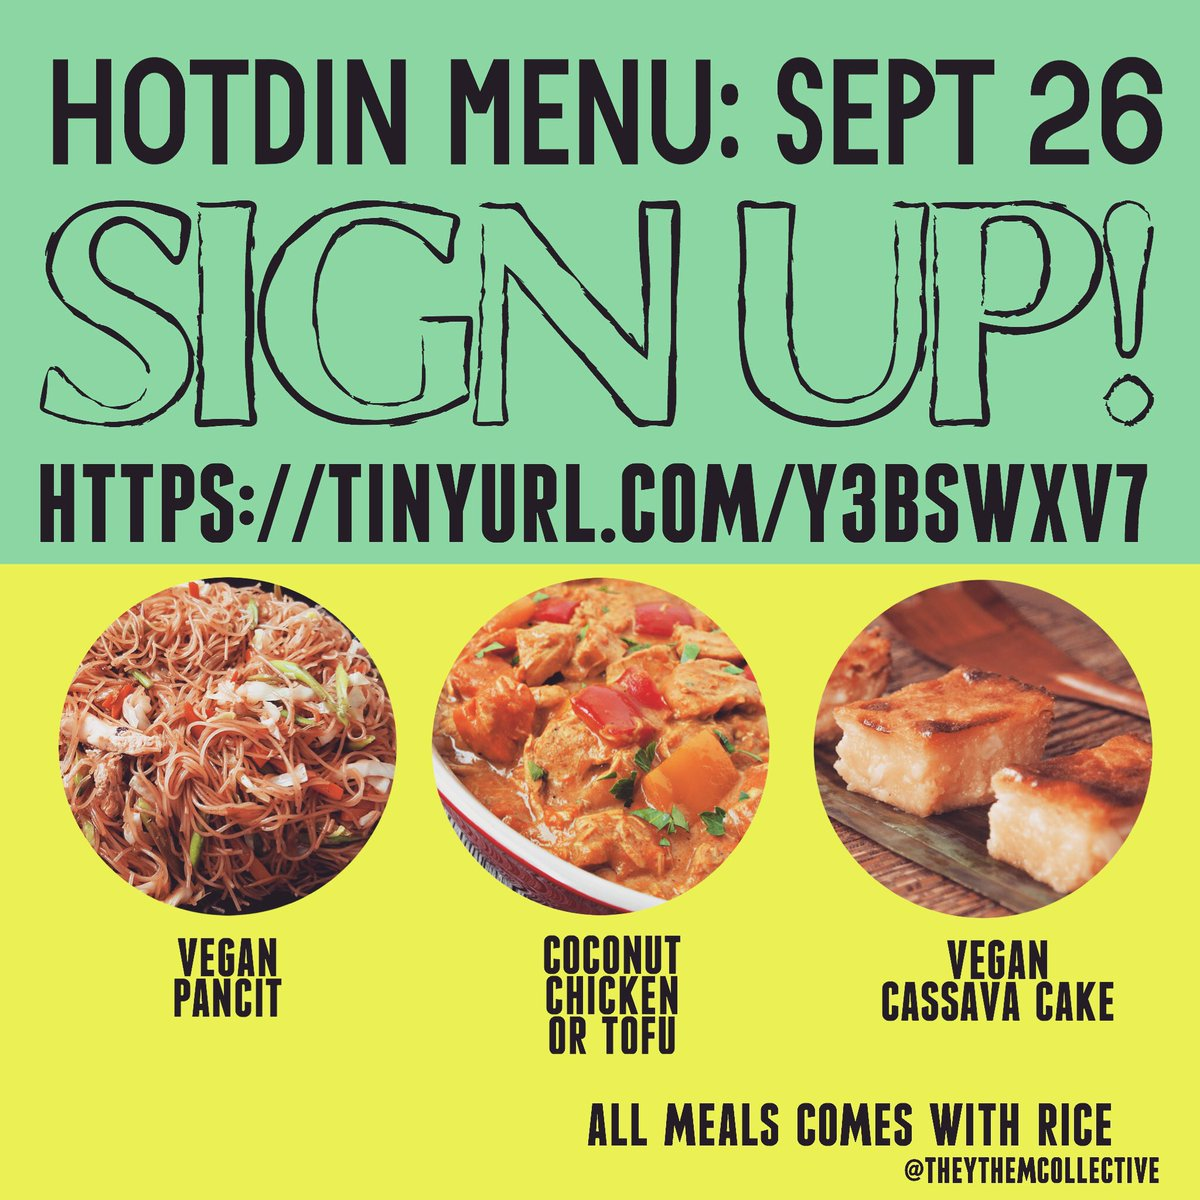 THEY/THEM Collective #HotDin menu is up! #DC community members can now sign up for a hot #Filipinx meal! (We are still looking for a donated kitchen space!) #DCProtests #WeKeepUsSafe https://t.co/s3jgOZ7baP